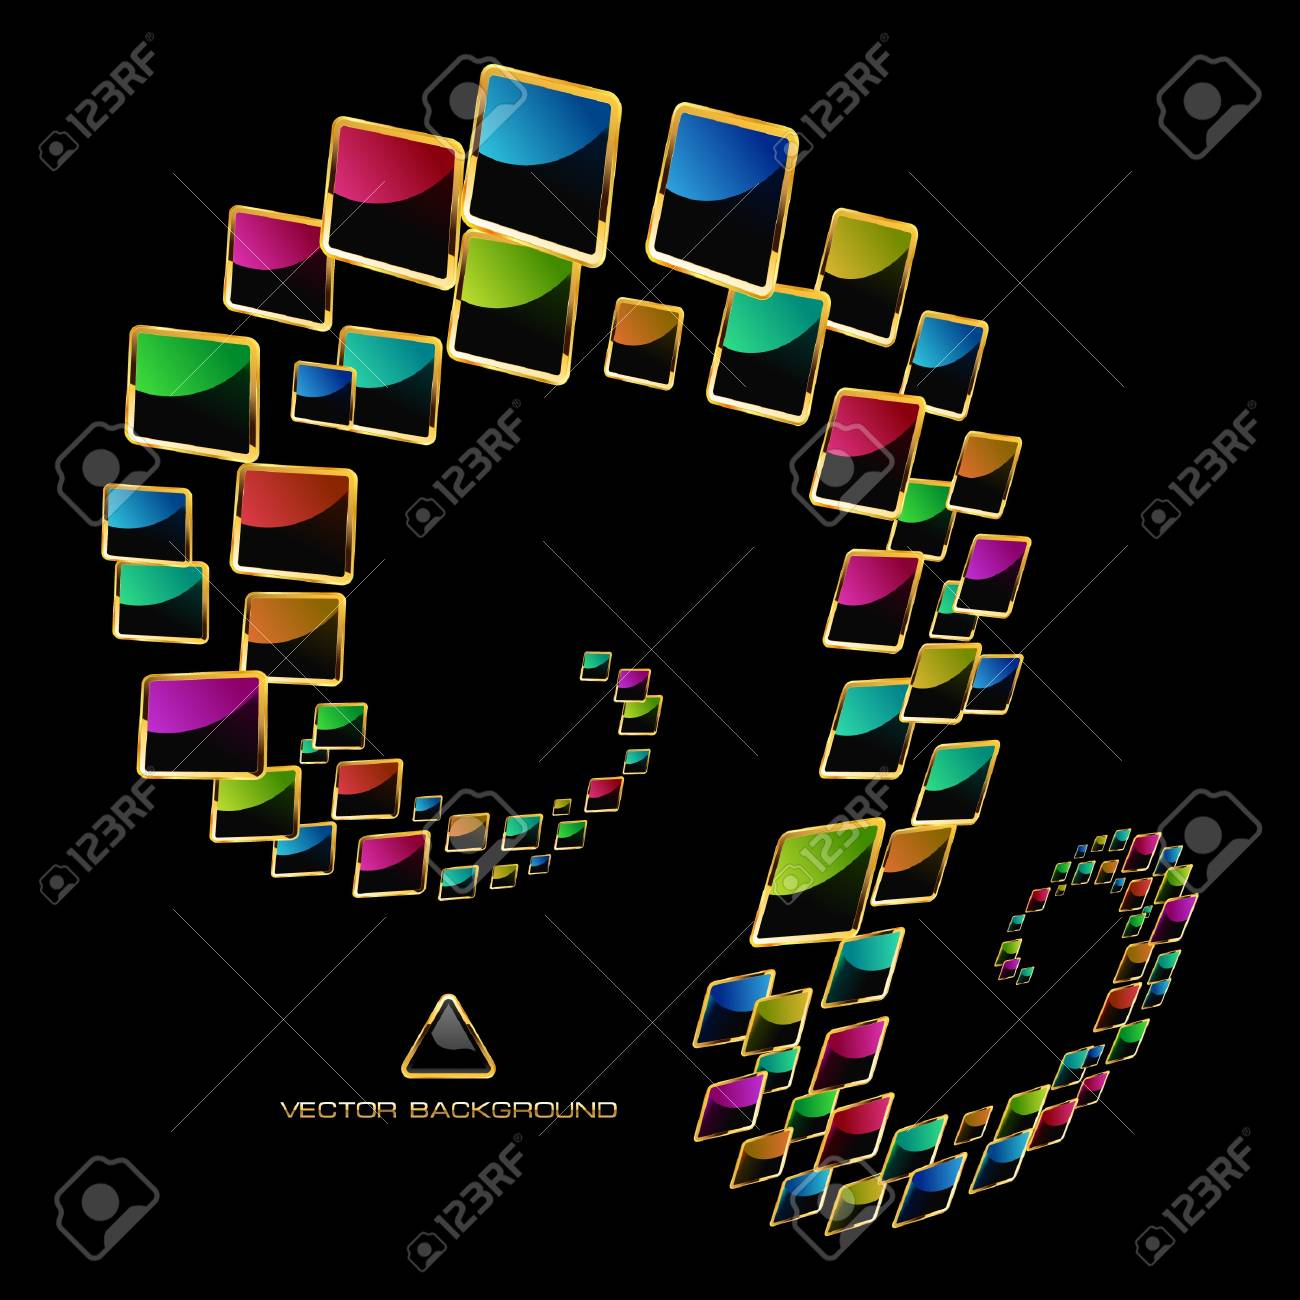 Colorful abstract background. Stock Vector - 9392577